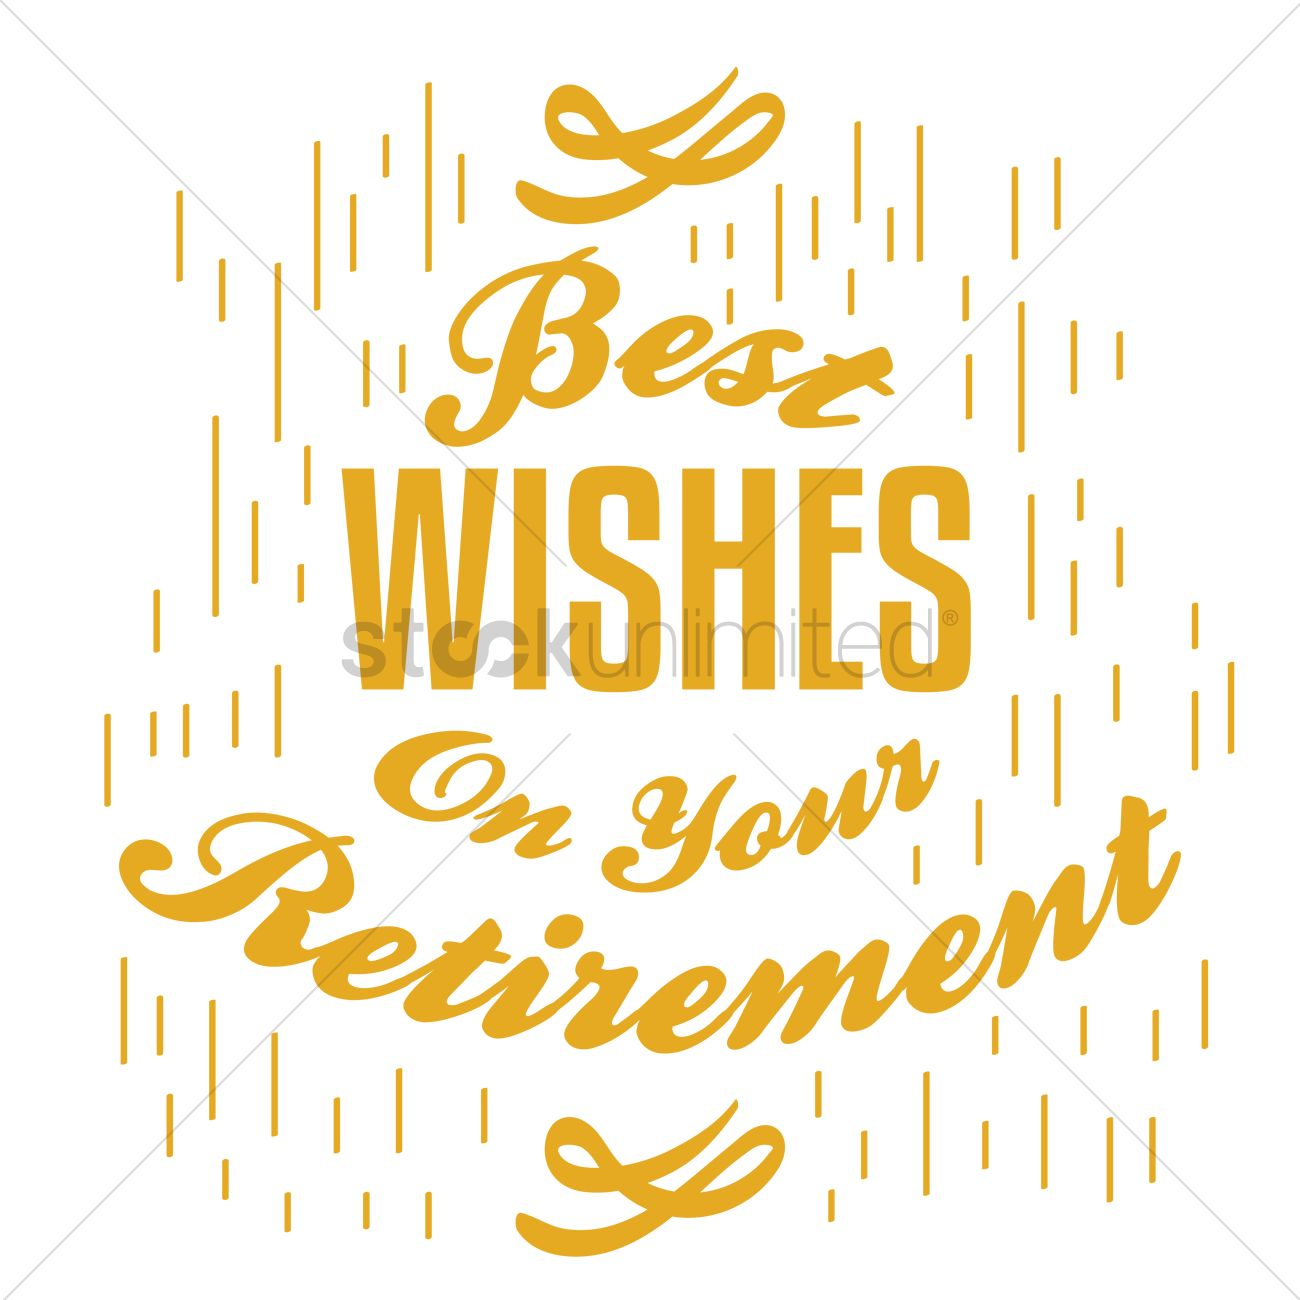 Download Wallpaper Positive Quotes Happy Retirement Wish Vector Image 1827718 Stockunlimited